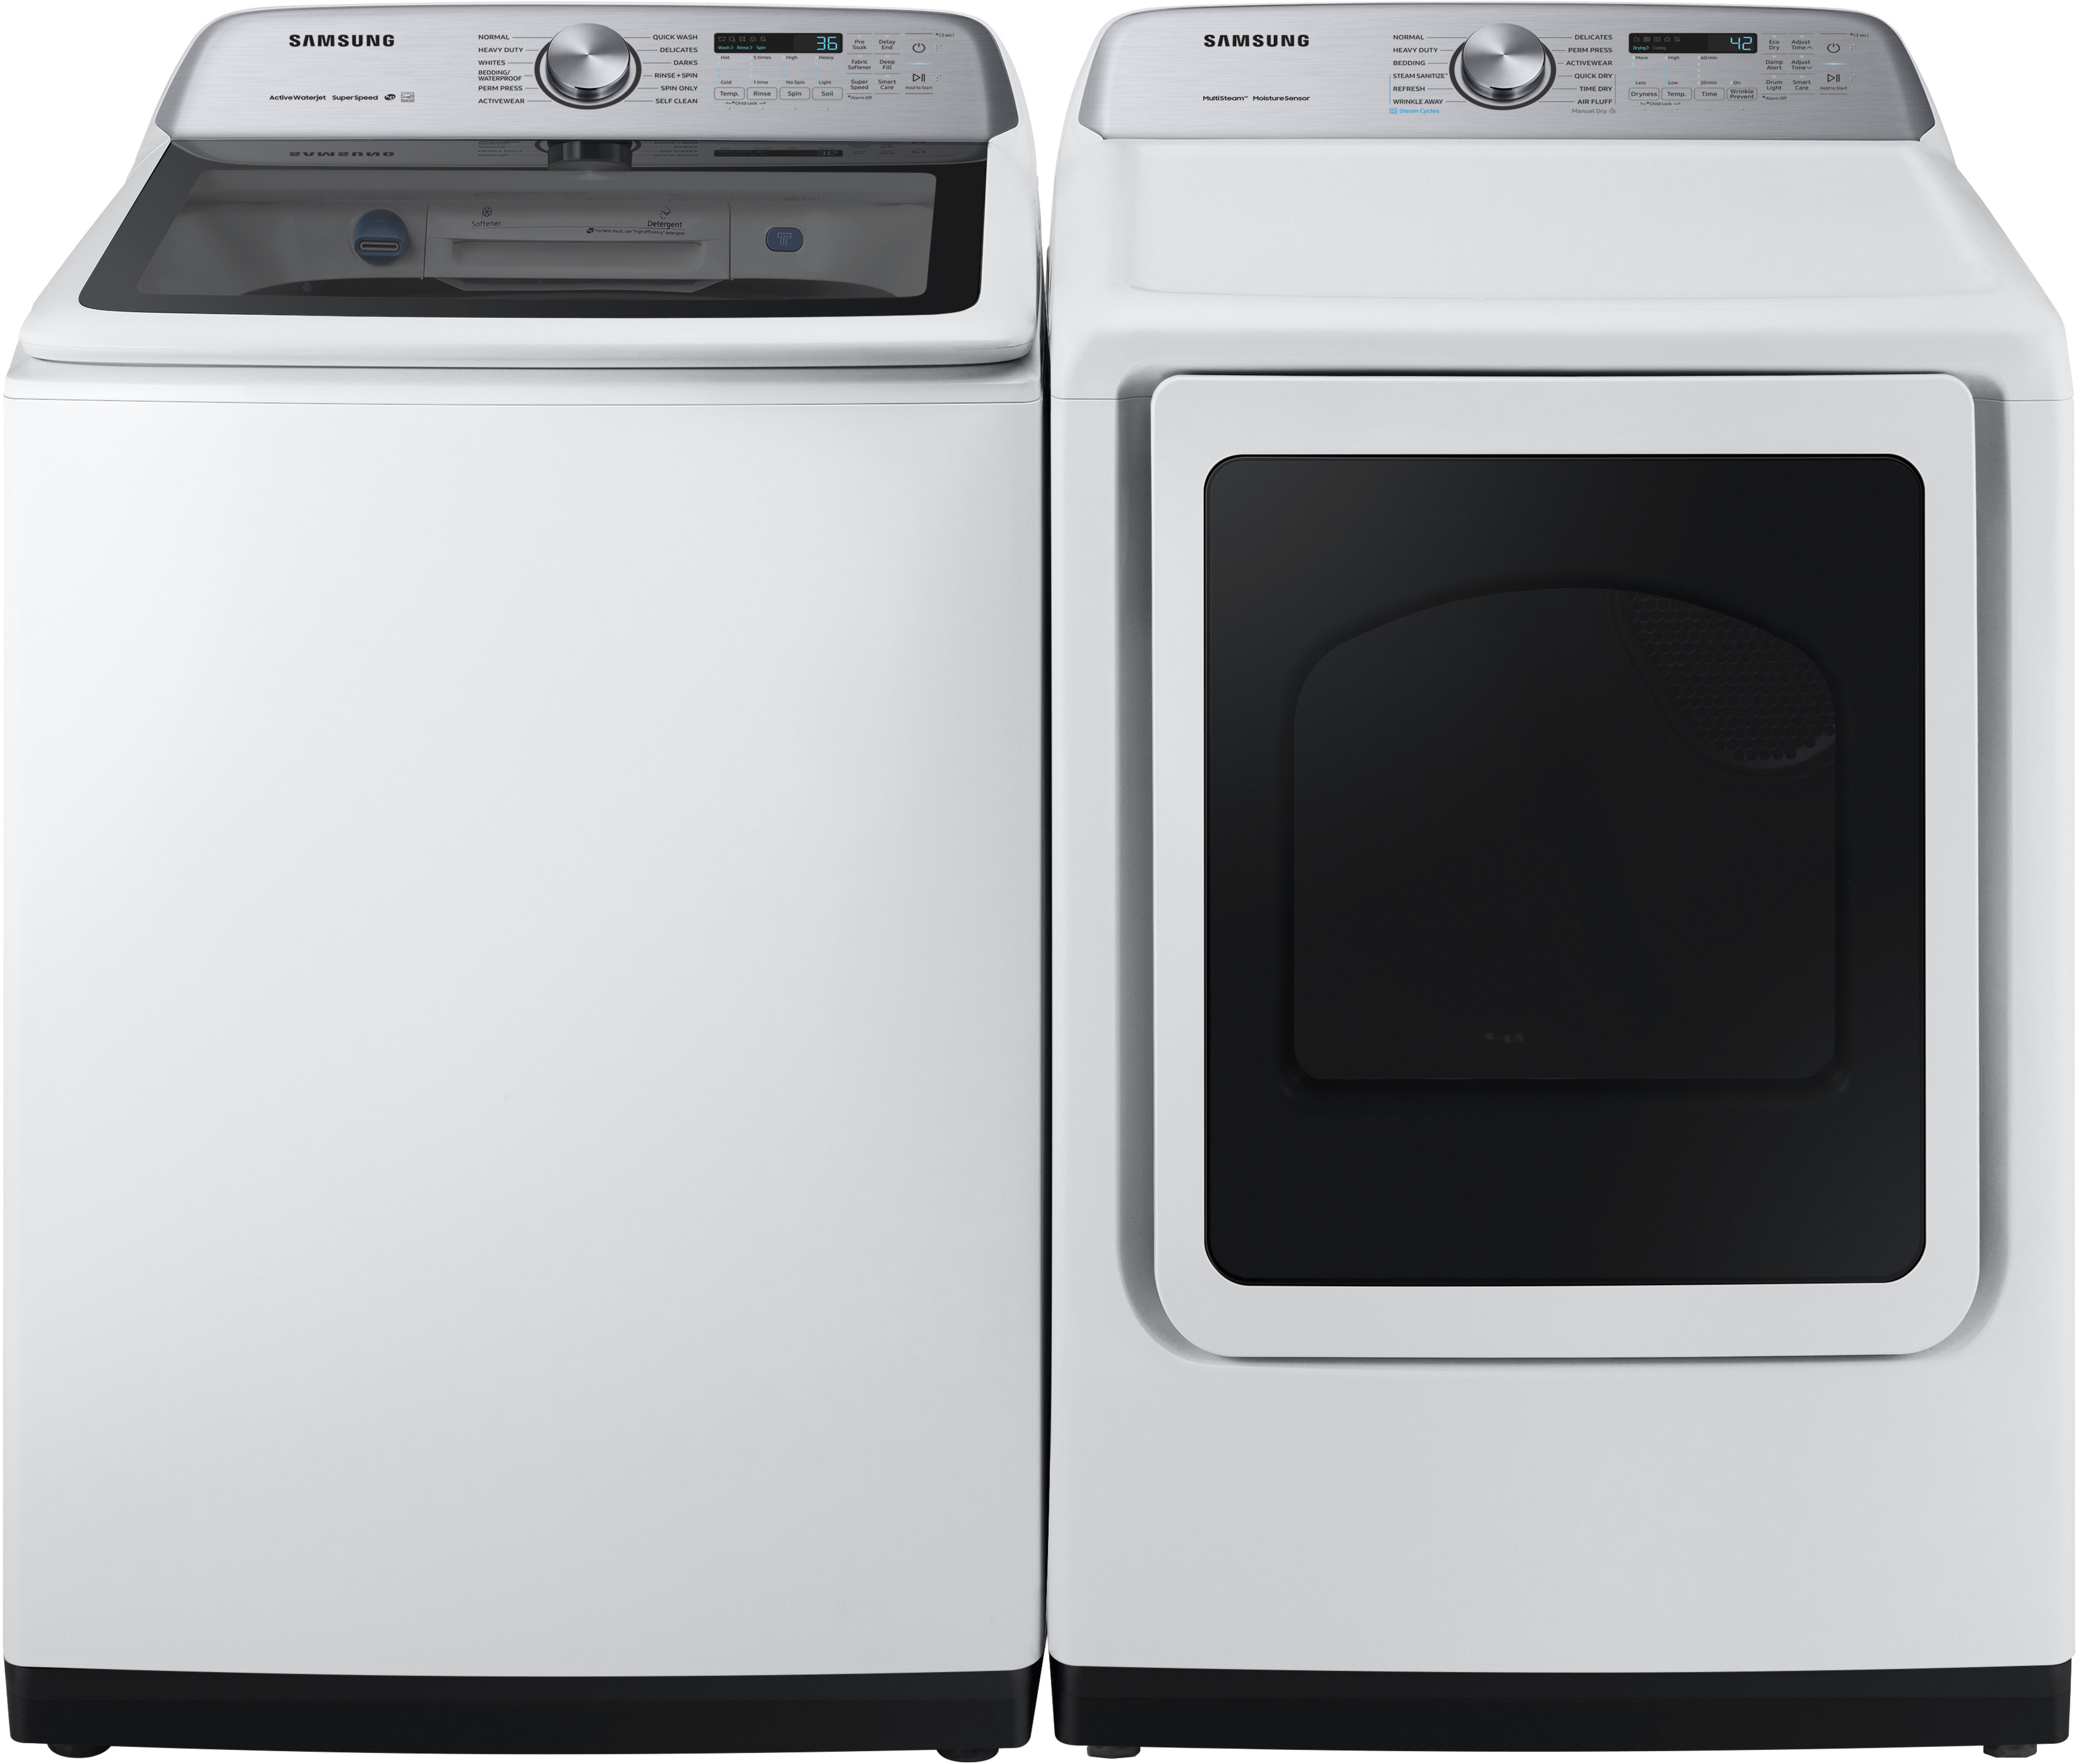 Samsung Sawadrew54001 Side By Side Washer Dryer Set With Top Load Washer And Electric Dryer In White